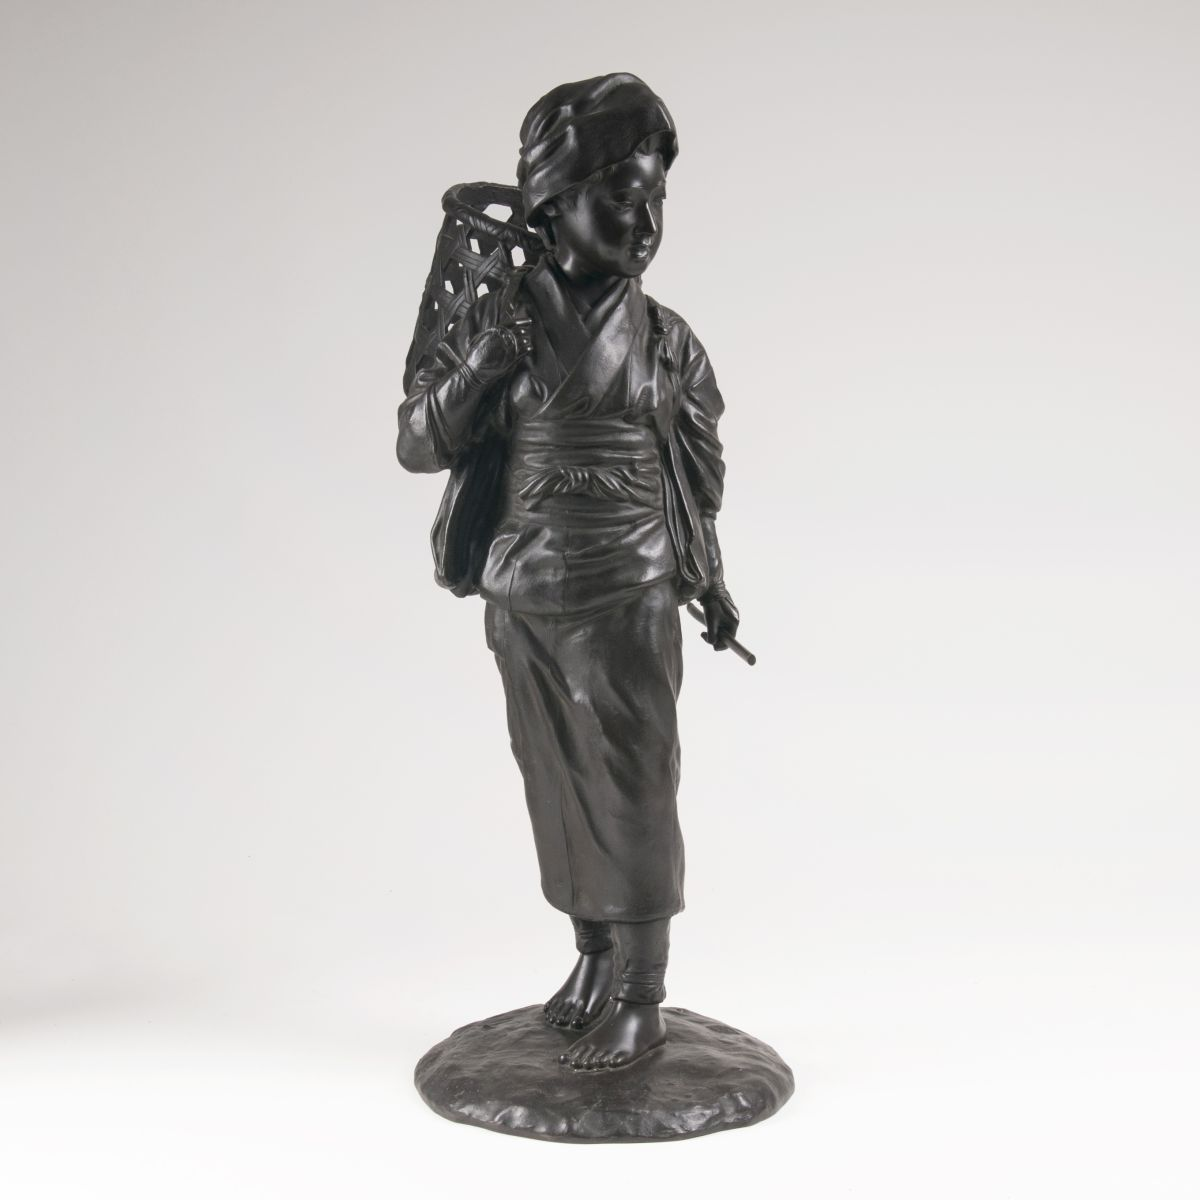 A Japanese bronze sculpture 'Boy with pannier'